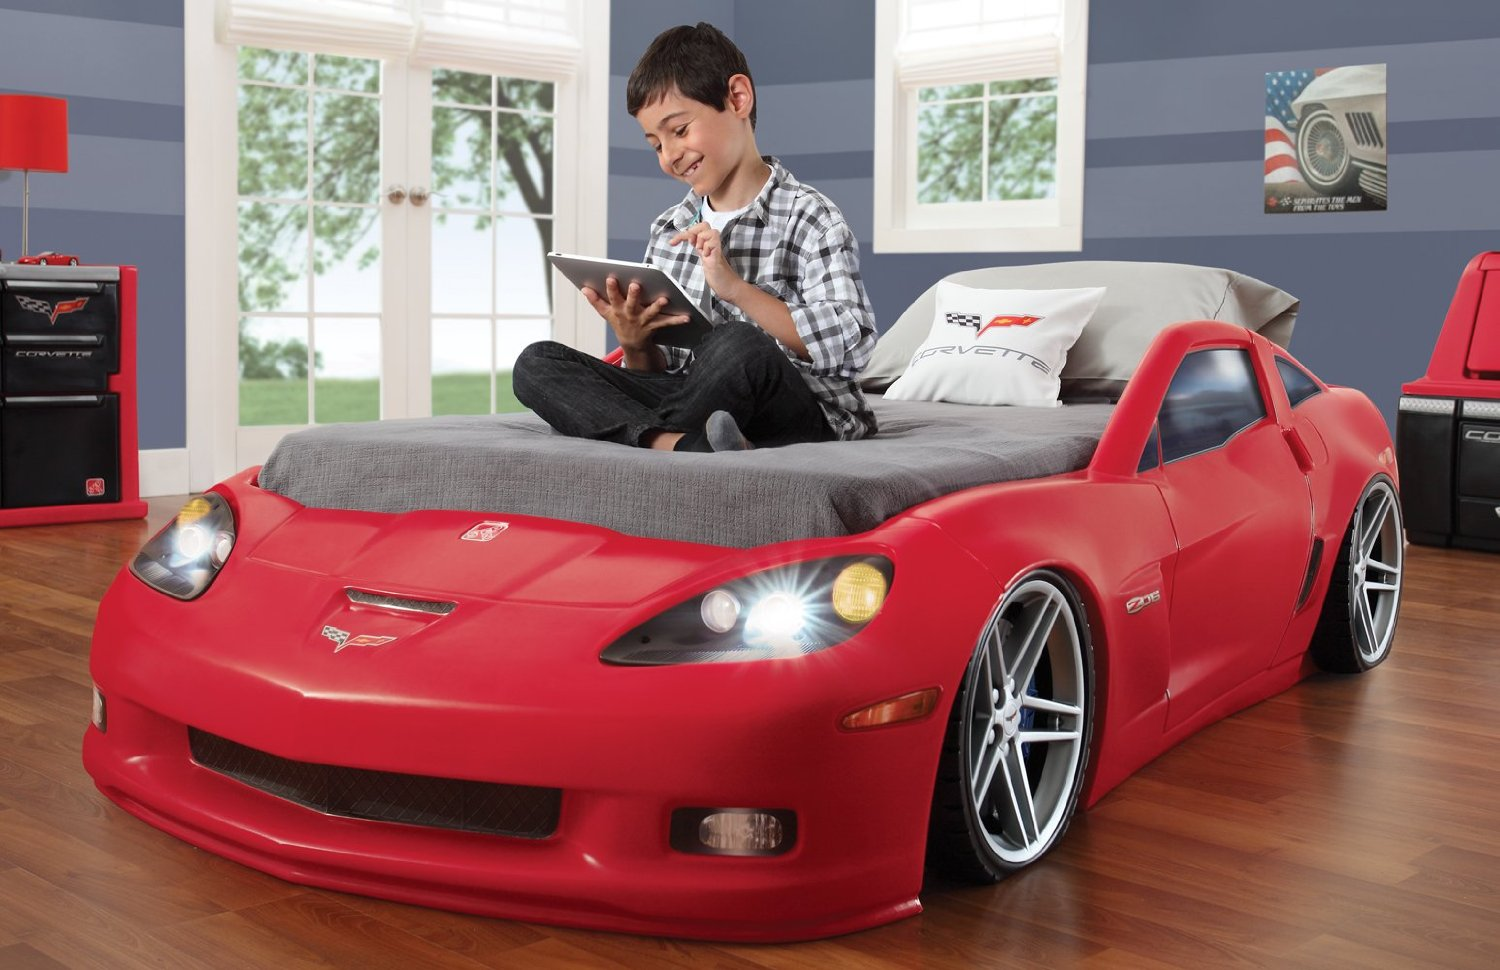 Build Imaginative Bedroom Ideas with Race Car Beds for Toddlers ...